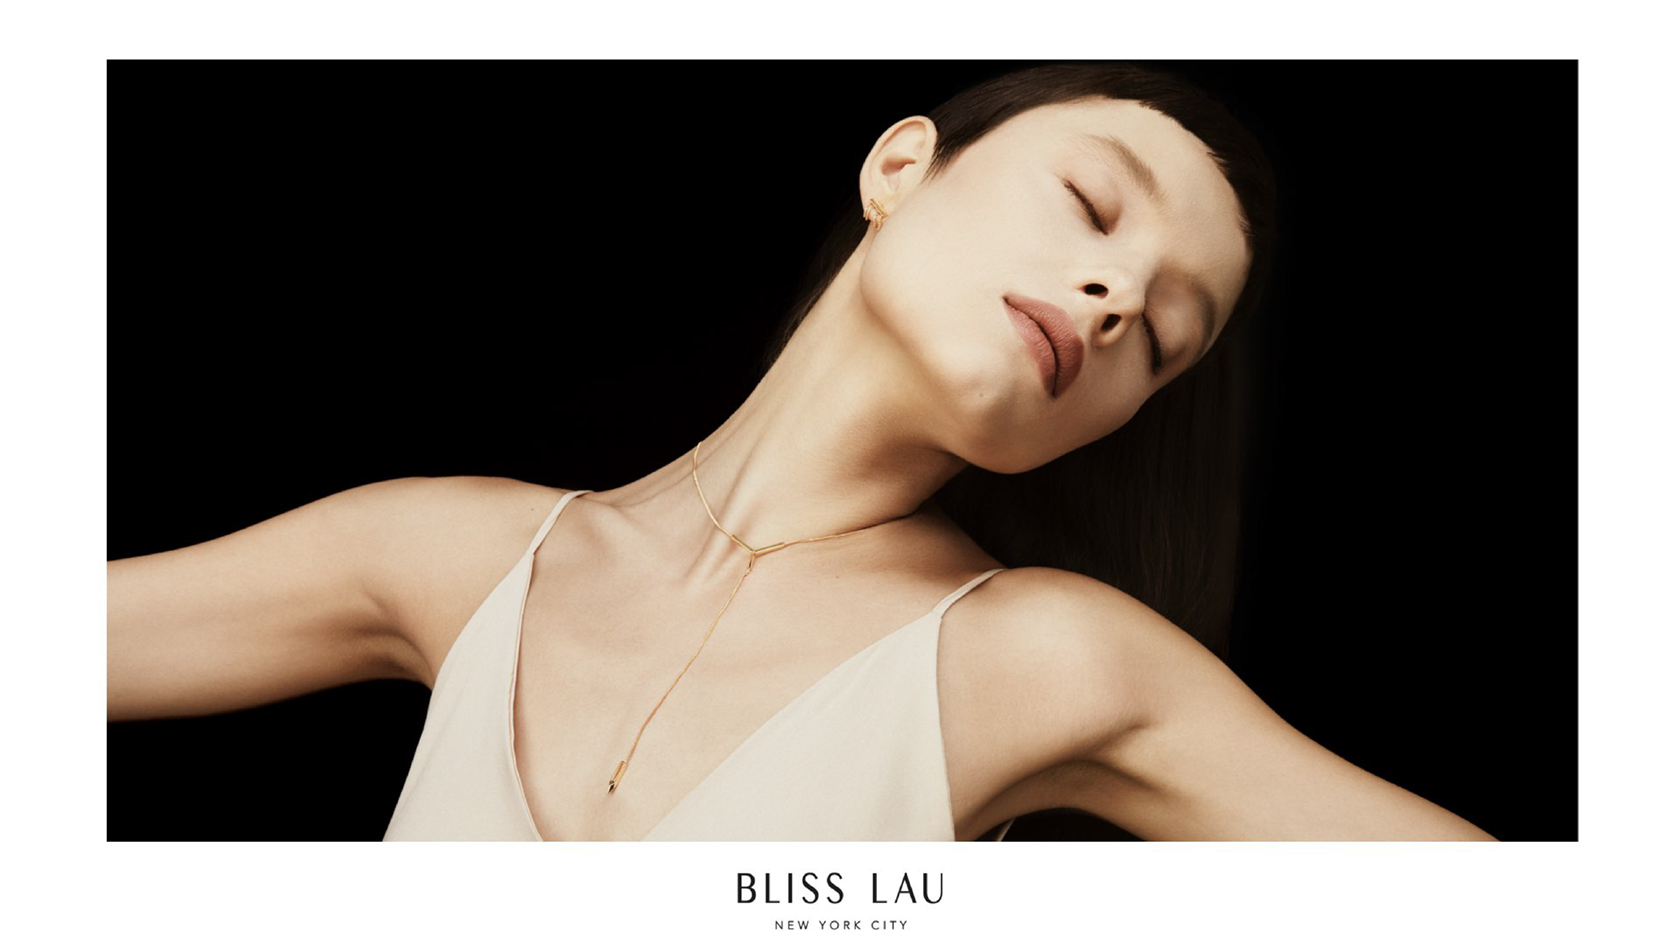 BLISSLAU-01 copy